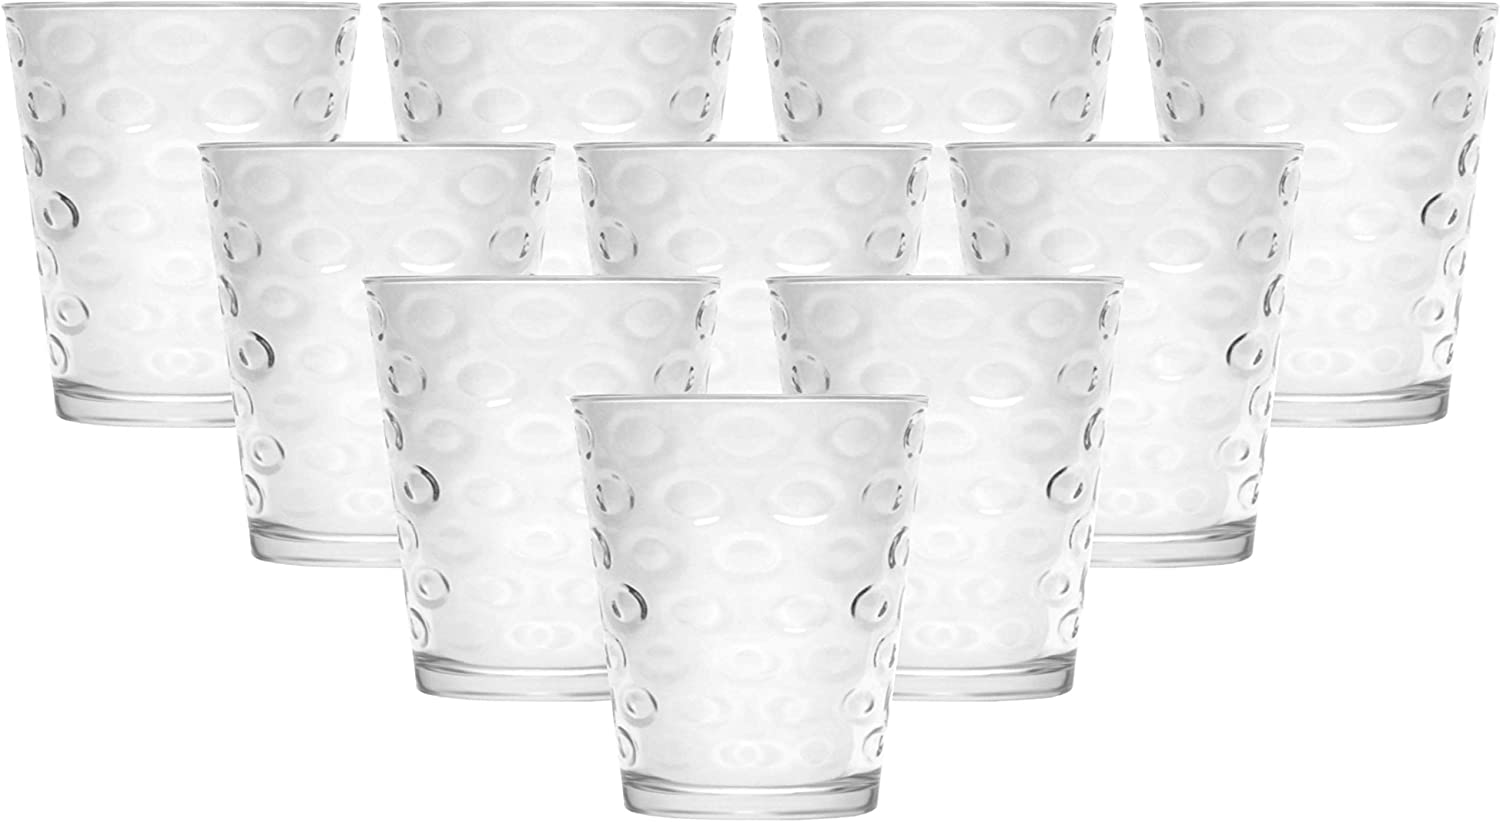 Circleware Circles Juice Drinking Glasses, Huge Set of 10, Heavy Base Tumbler Beverage Ice Tea Cups, Home & Kitchen Entertainment Glassware for Water, Beer, Whiskey Bar Decor, 7 oz, Clear